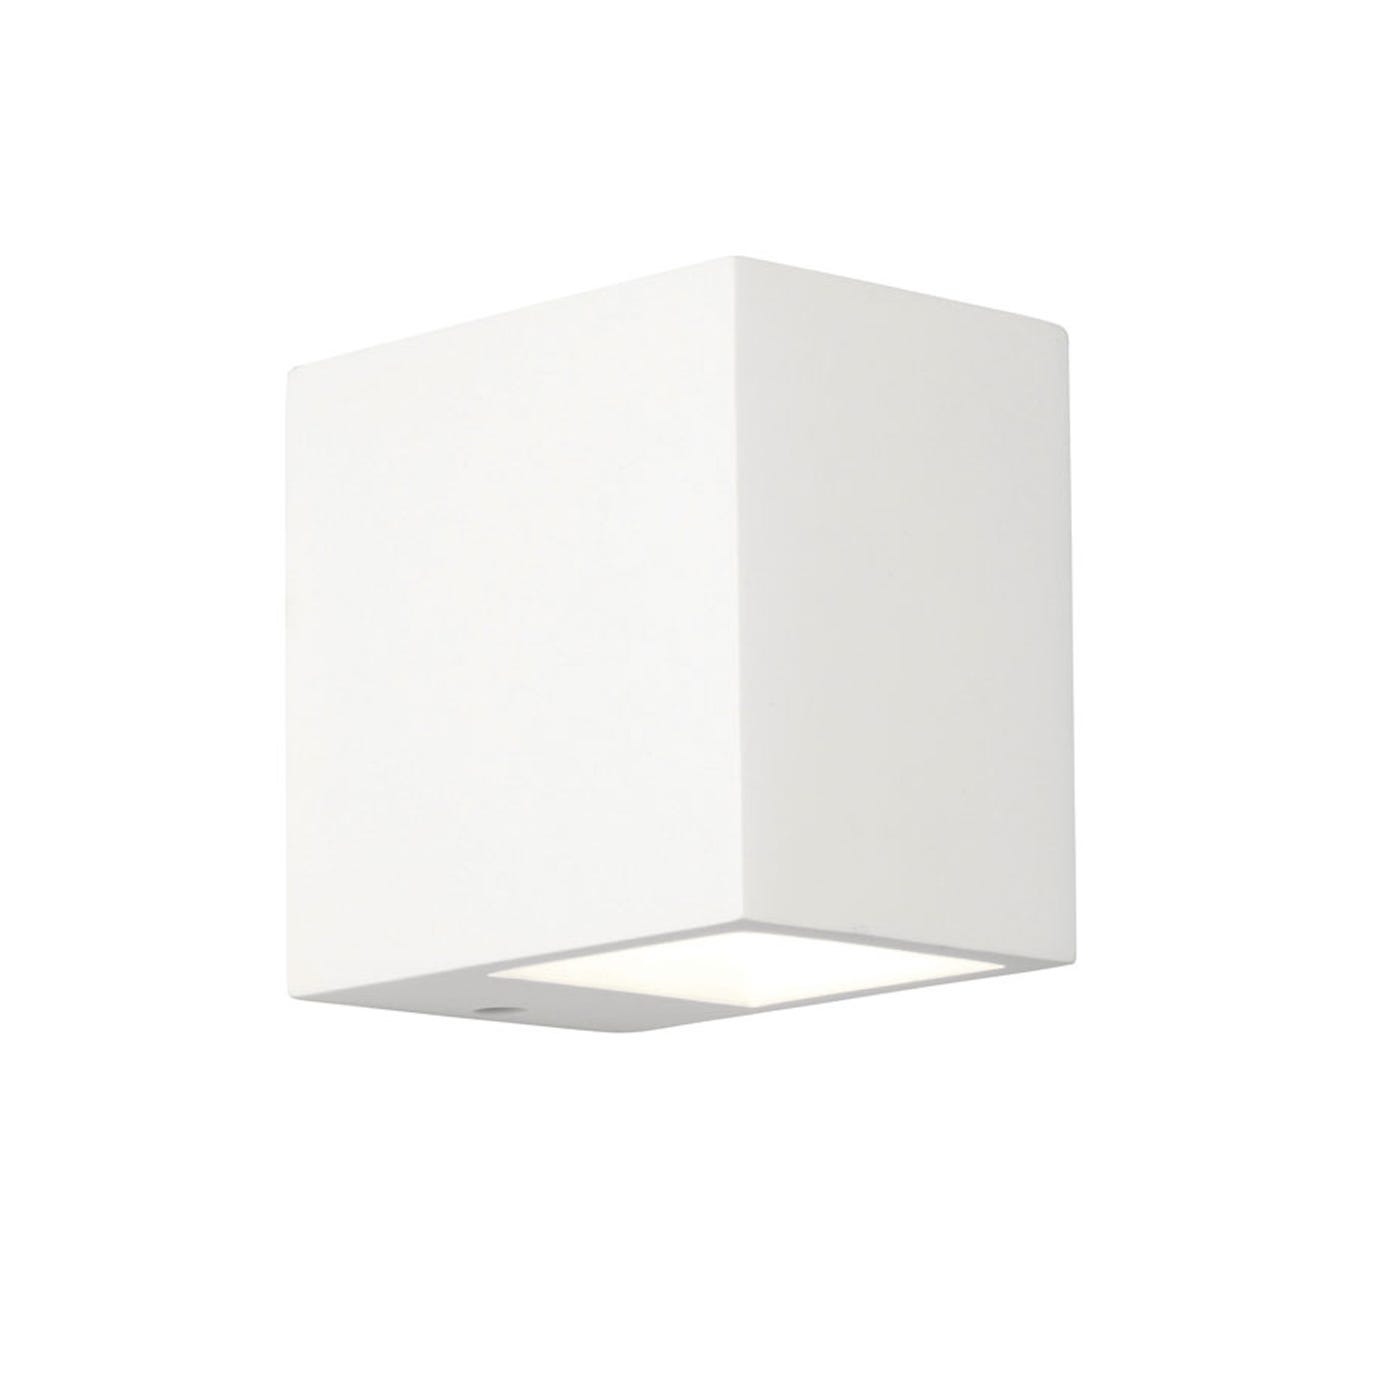 Mosto Plaster White Up/Down Wall Light